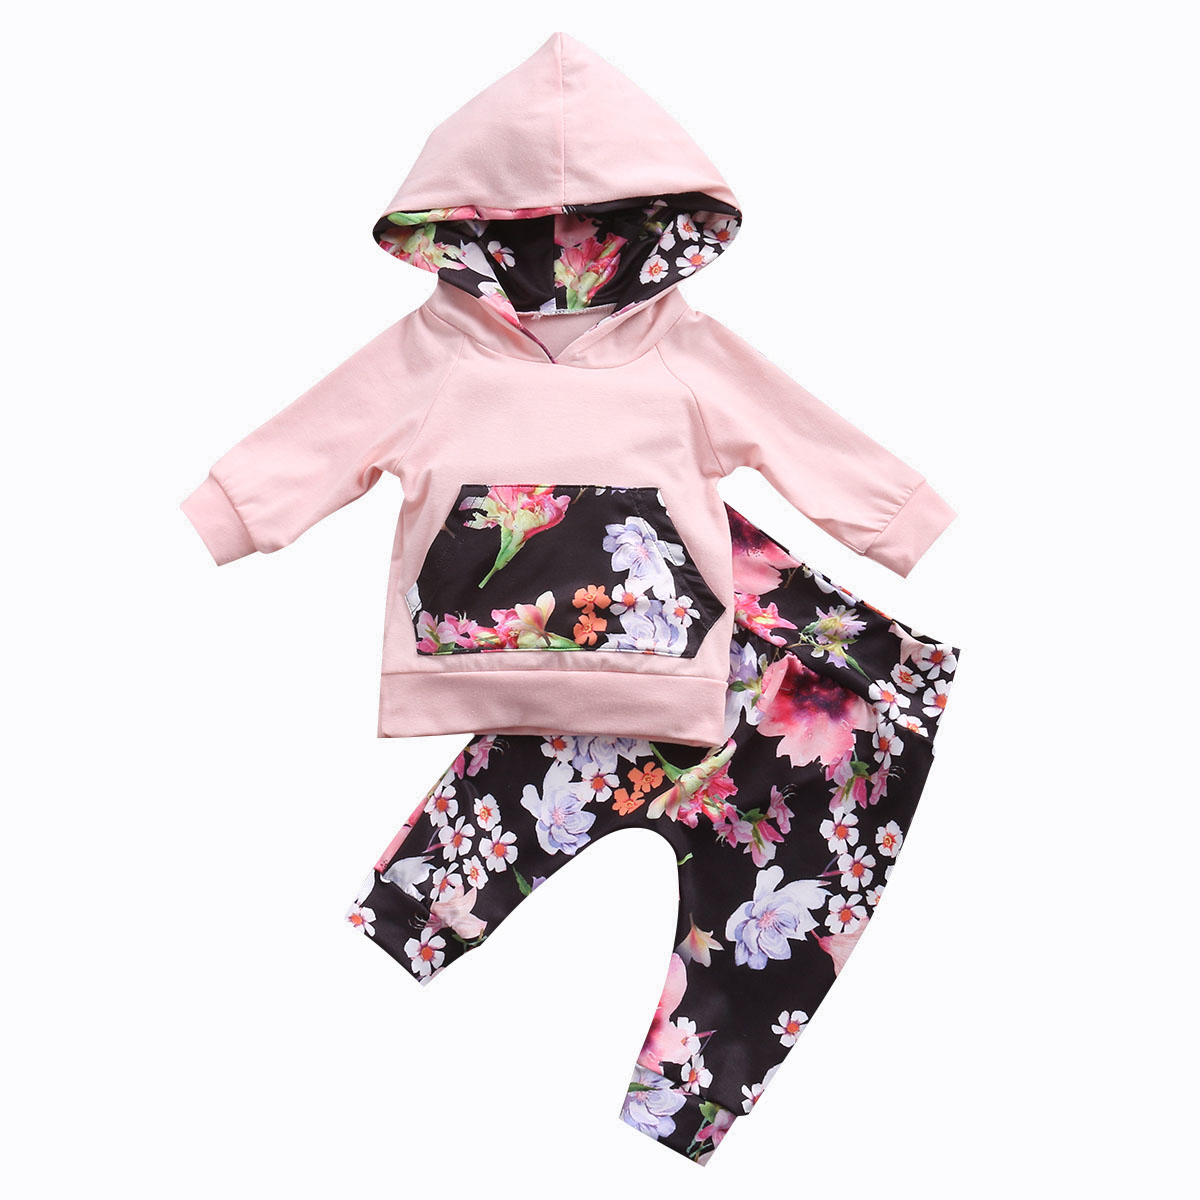 Cute Newborn Baby 2PCS Jumper Hooded Coat Tops+Floral Pants Outfit Clothing Spring Fall New Kids Infant Baby Girls Clothes Sets infant toddler kids baby girls summer outfit cotton striped sleeveless tops dress floral short pants girls clothes sunsuit 0 4y